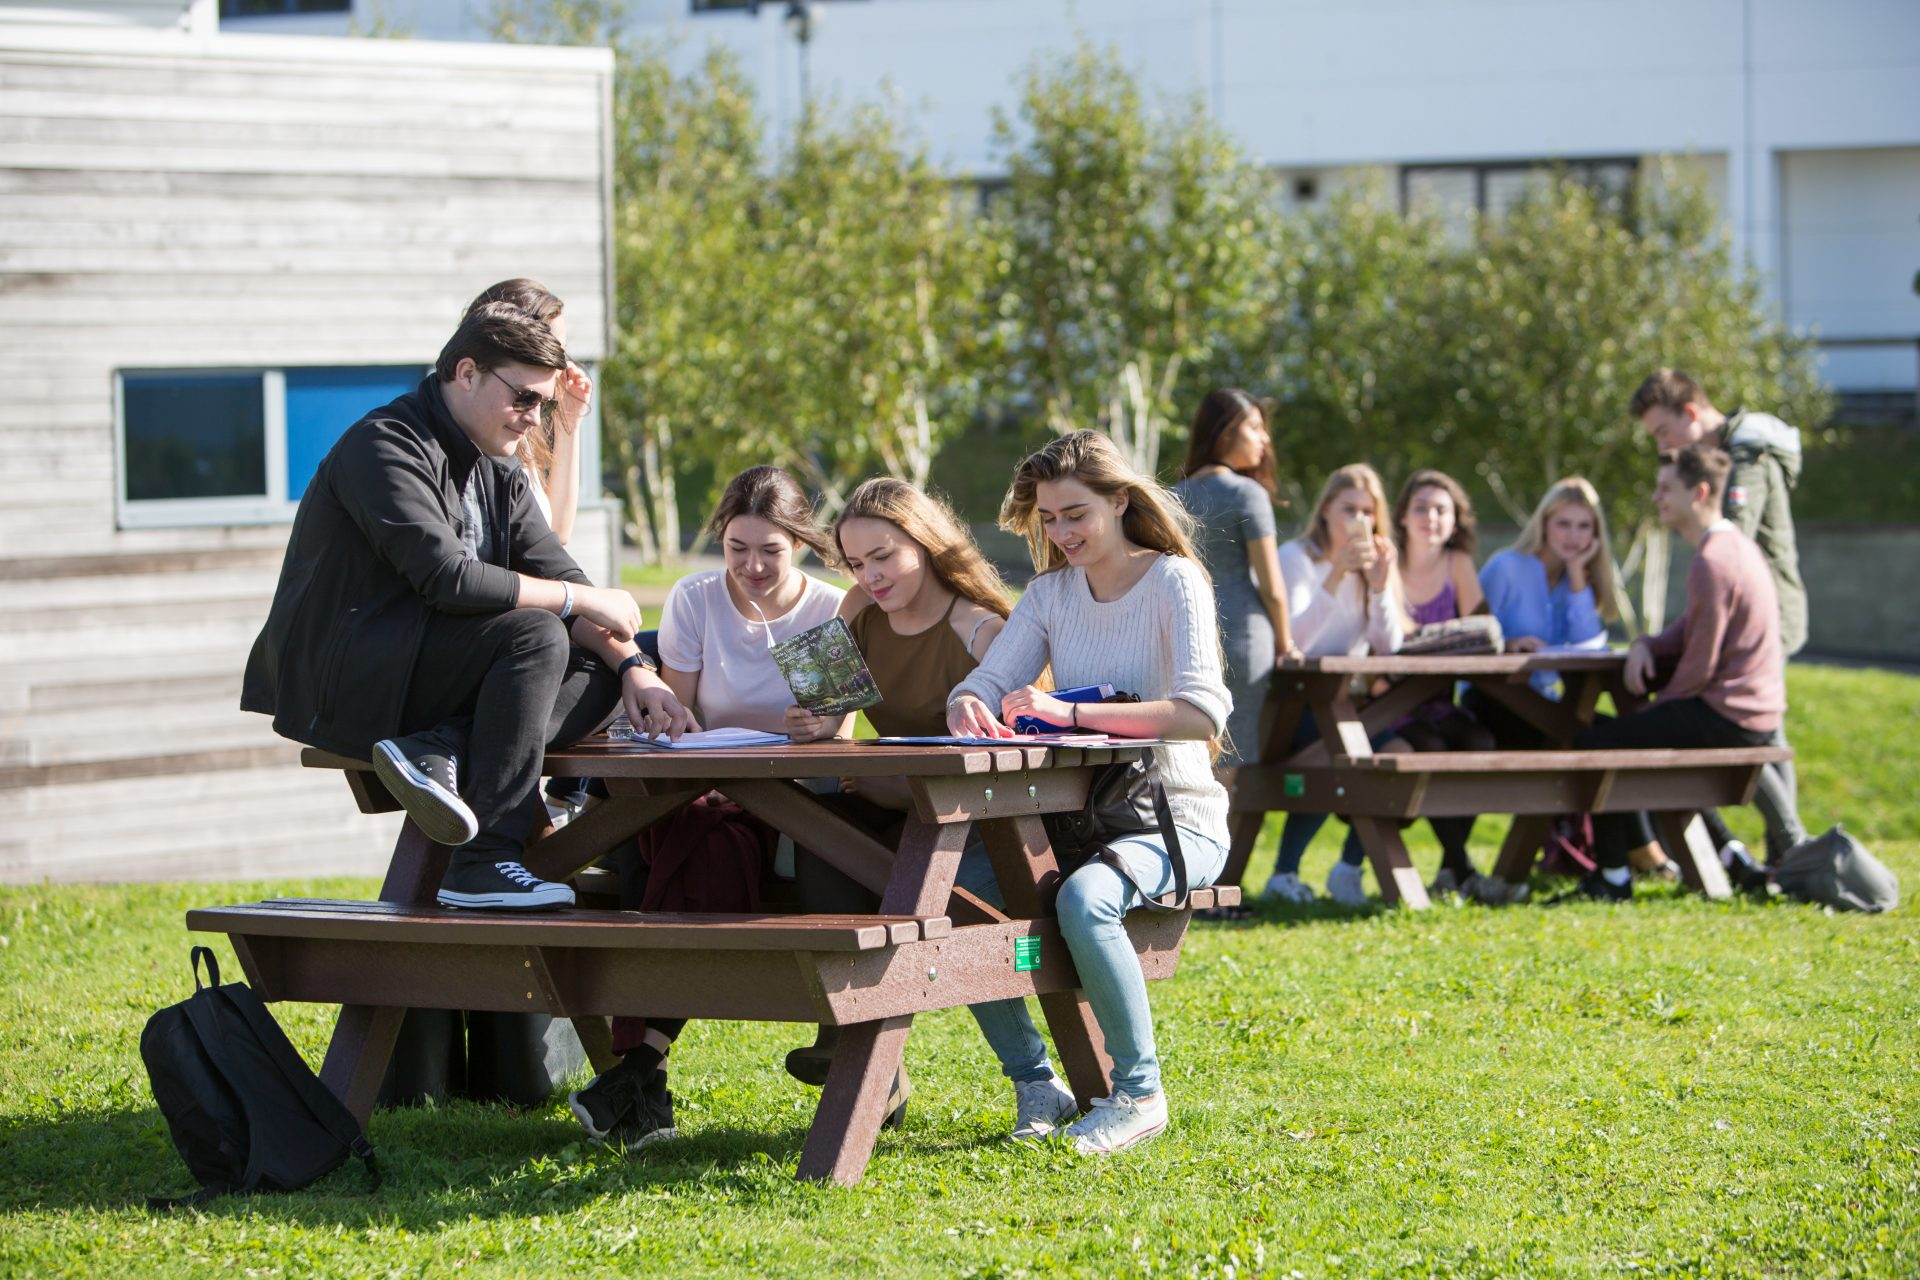 Students sat on benches